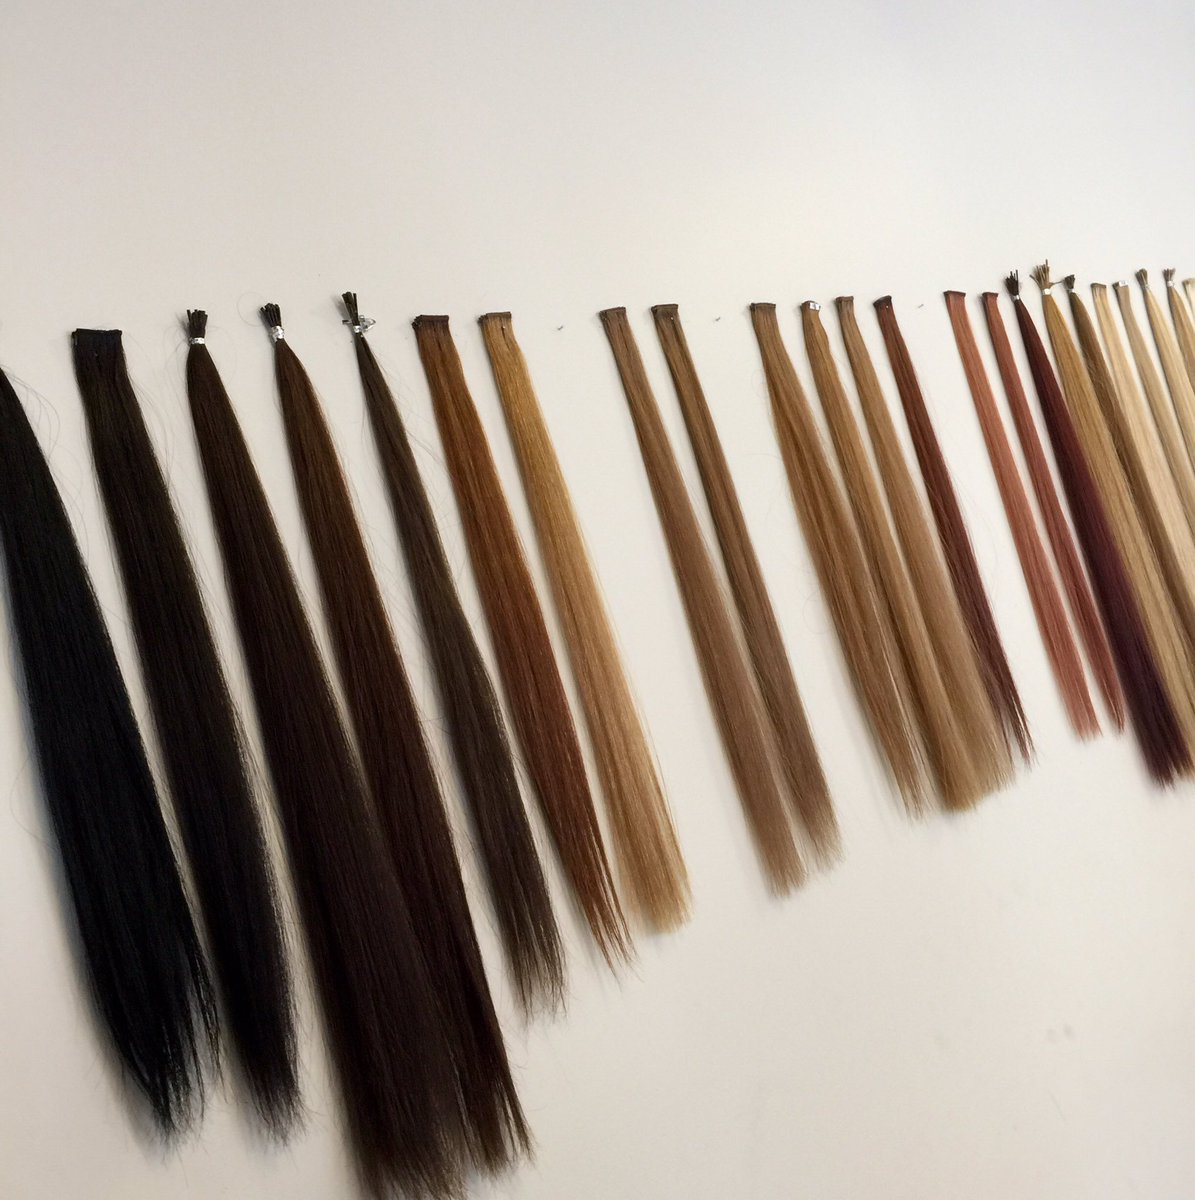 Az strands azstrands twitter we custom color match each of our clients hair extensions lovepicitter2swcjnaiwq at az strands hair extension salon pmusecretfo Image collections